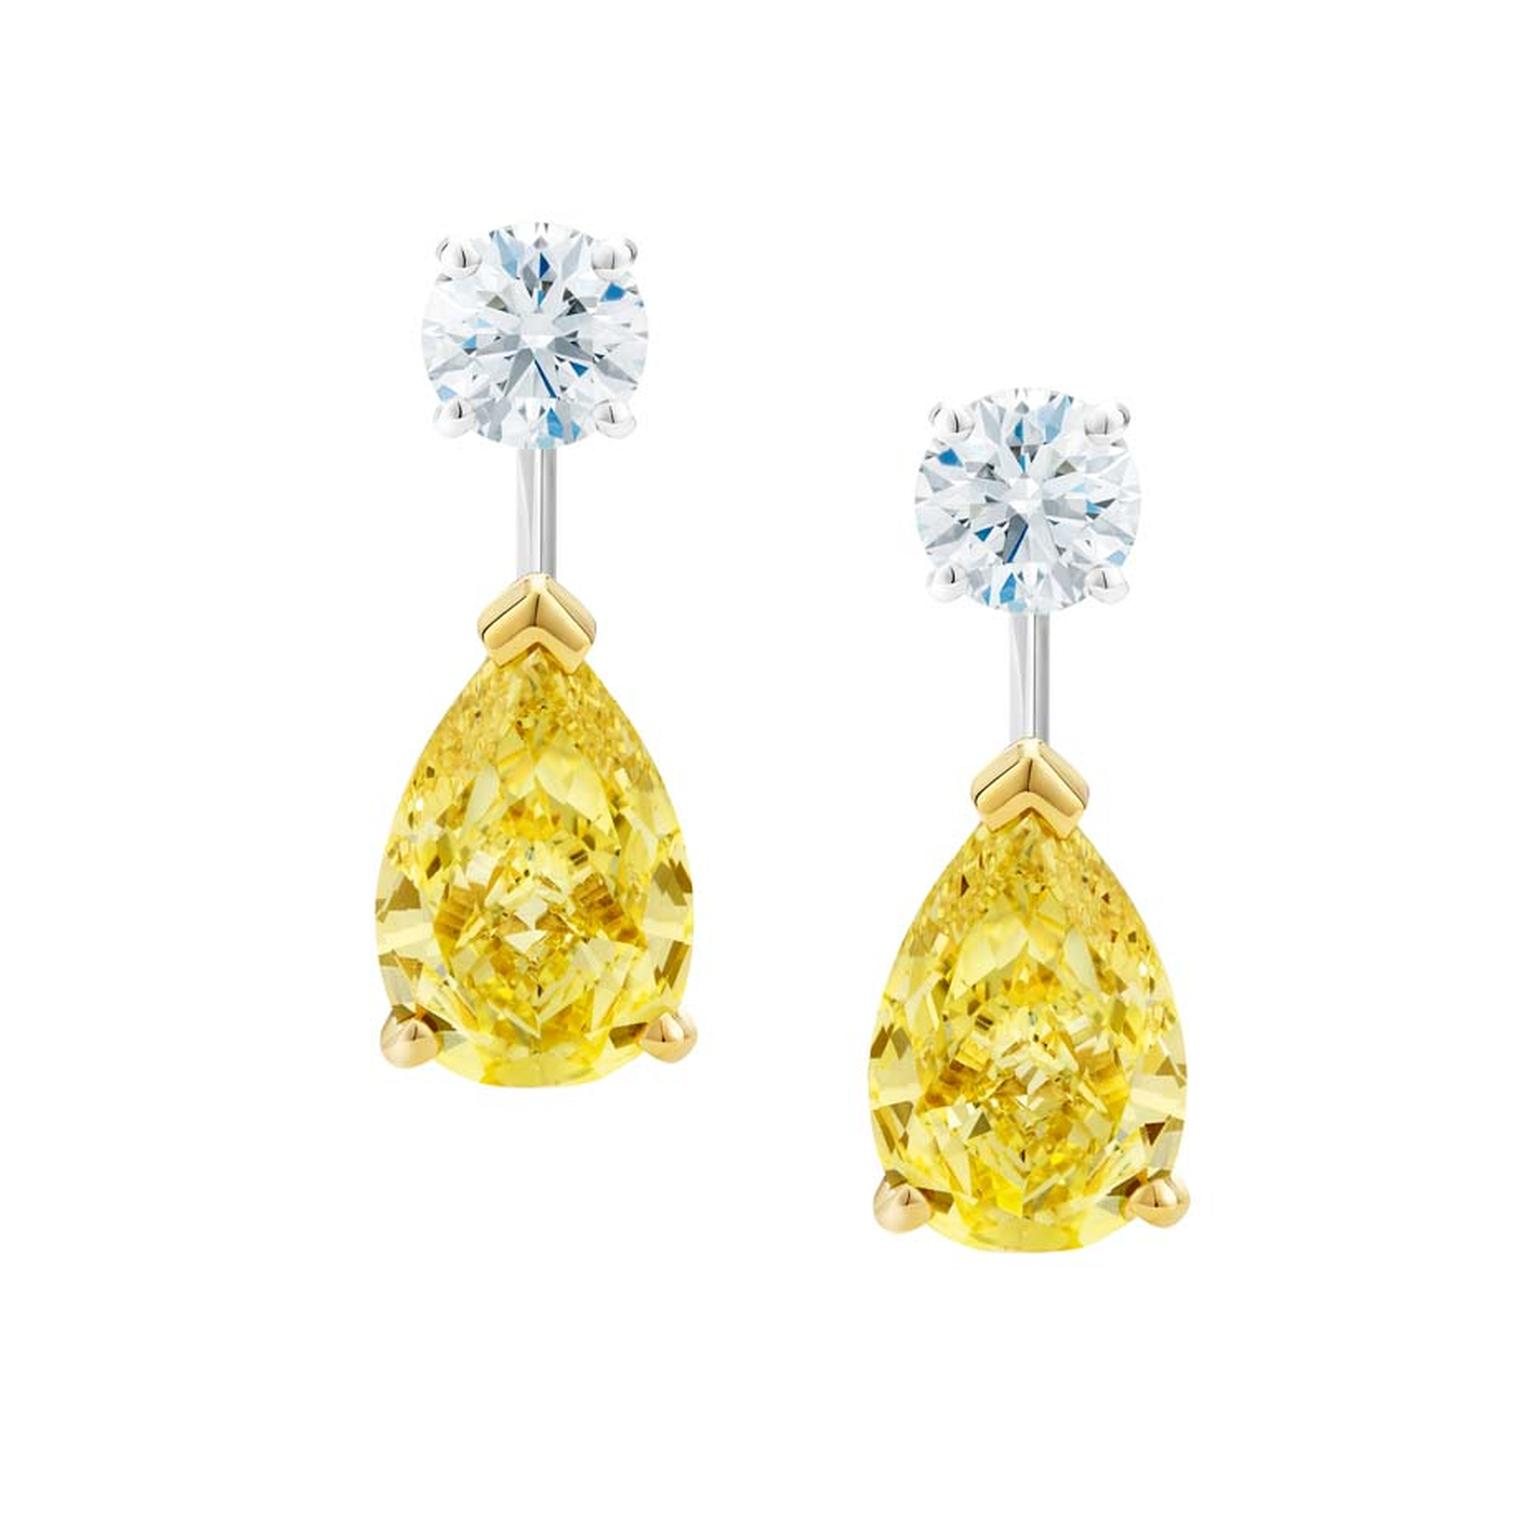 The pear-cut yellow diamonds in these new De Beers Drops of Light earrings are detachable, which means that the white round brilliant diamonds can also be worn as classic solitaire ear studs.